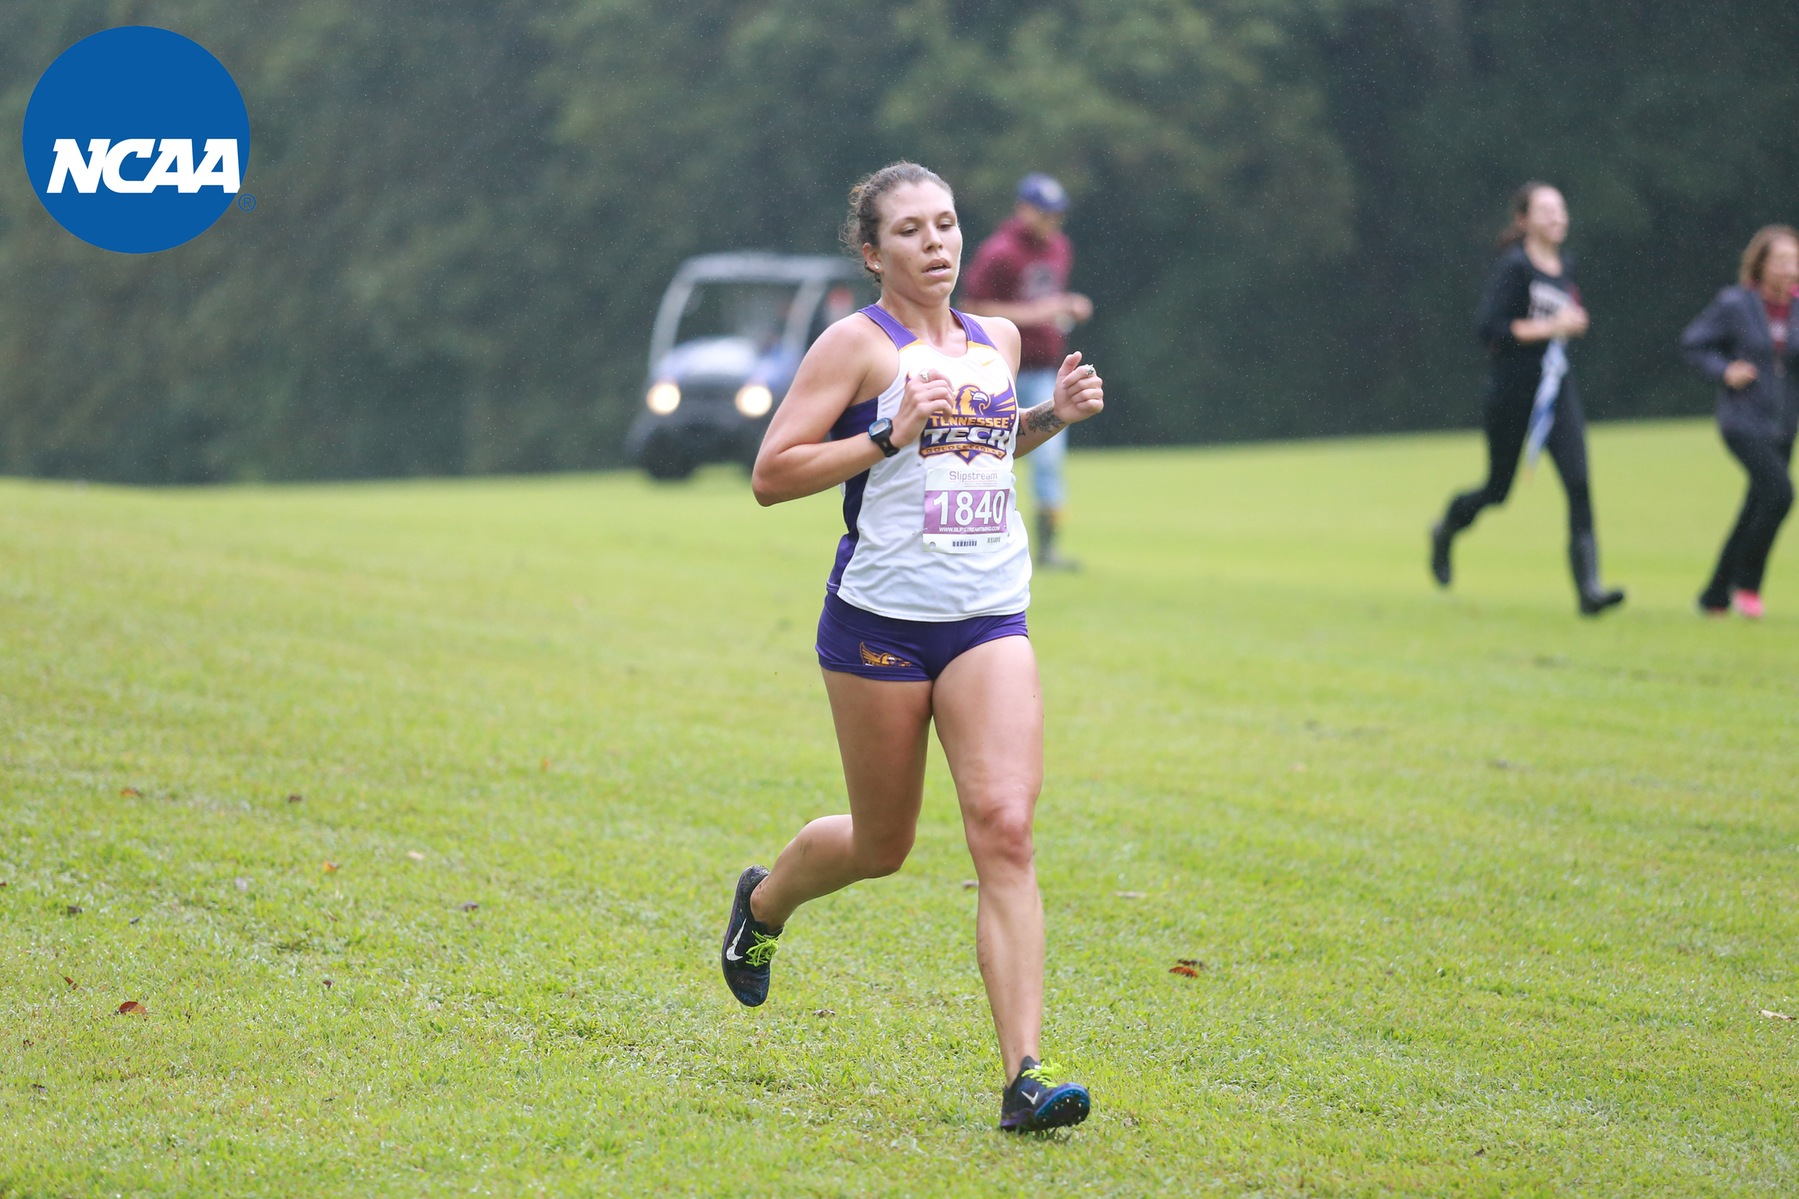 Tech women's cross country travels to NCAA South Regional on Friday